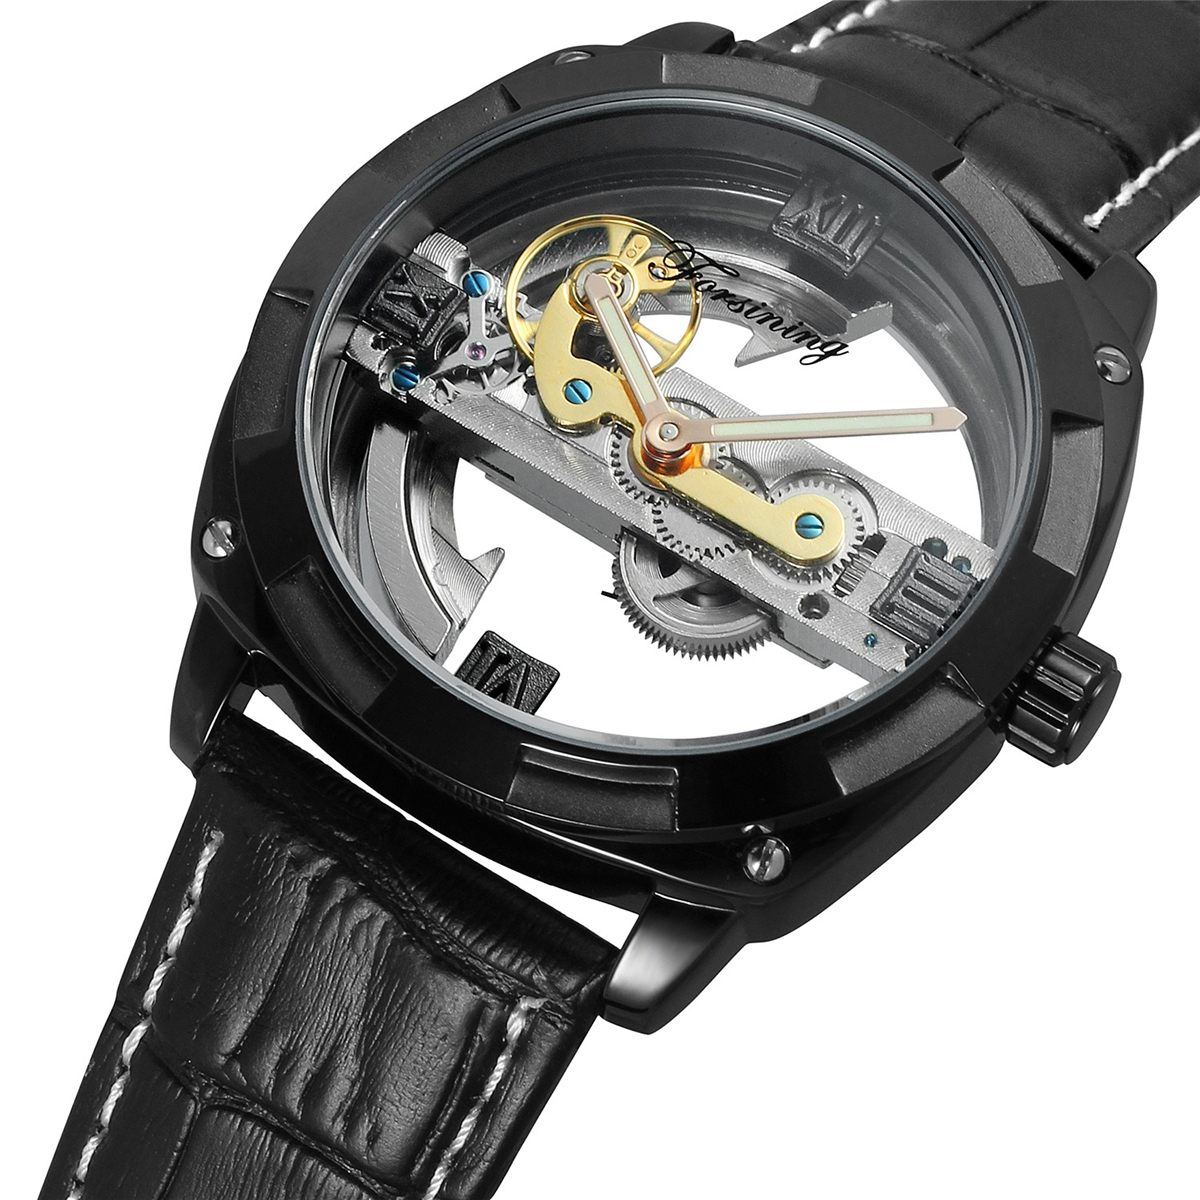 Forsining Luxury Brand Transparent Men Mechanical Watch Gold Skeleton Automatic Watches Mens Wristwatch Black Leather Band Clock